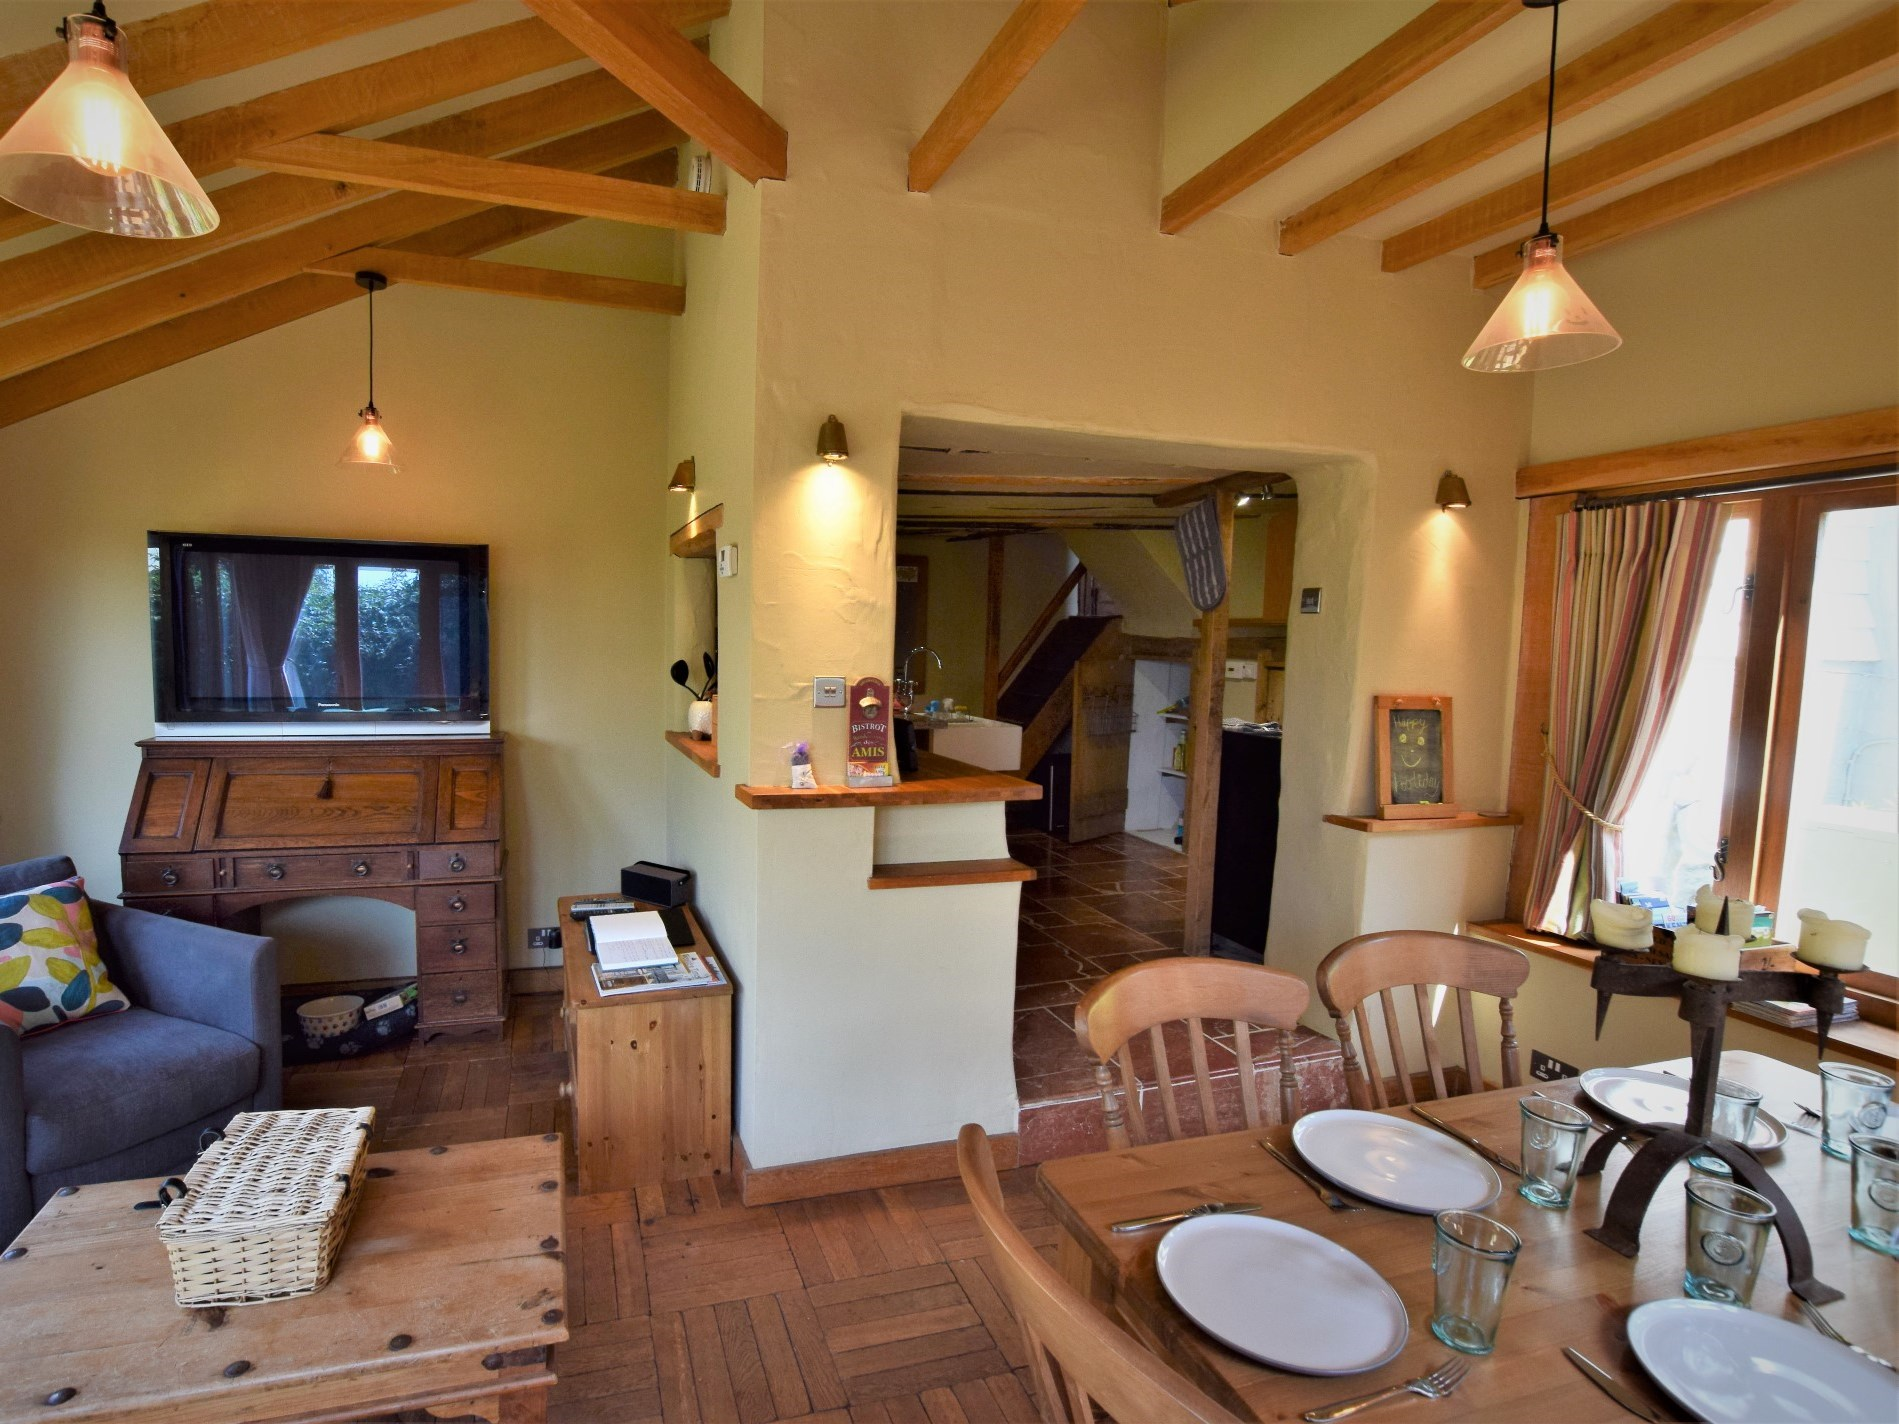 3 Bedroom Cottage in Cranbrook, South of England